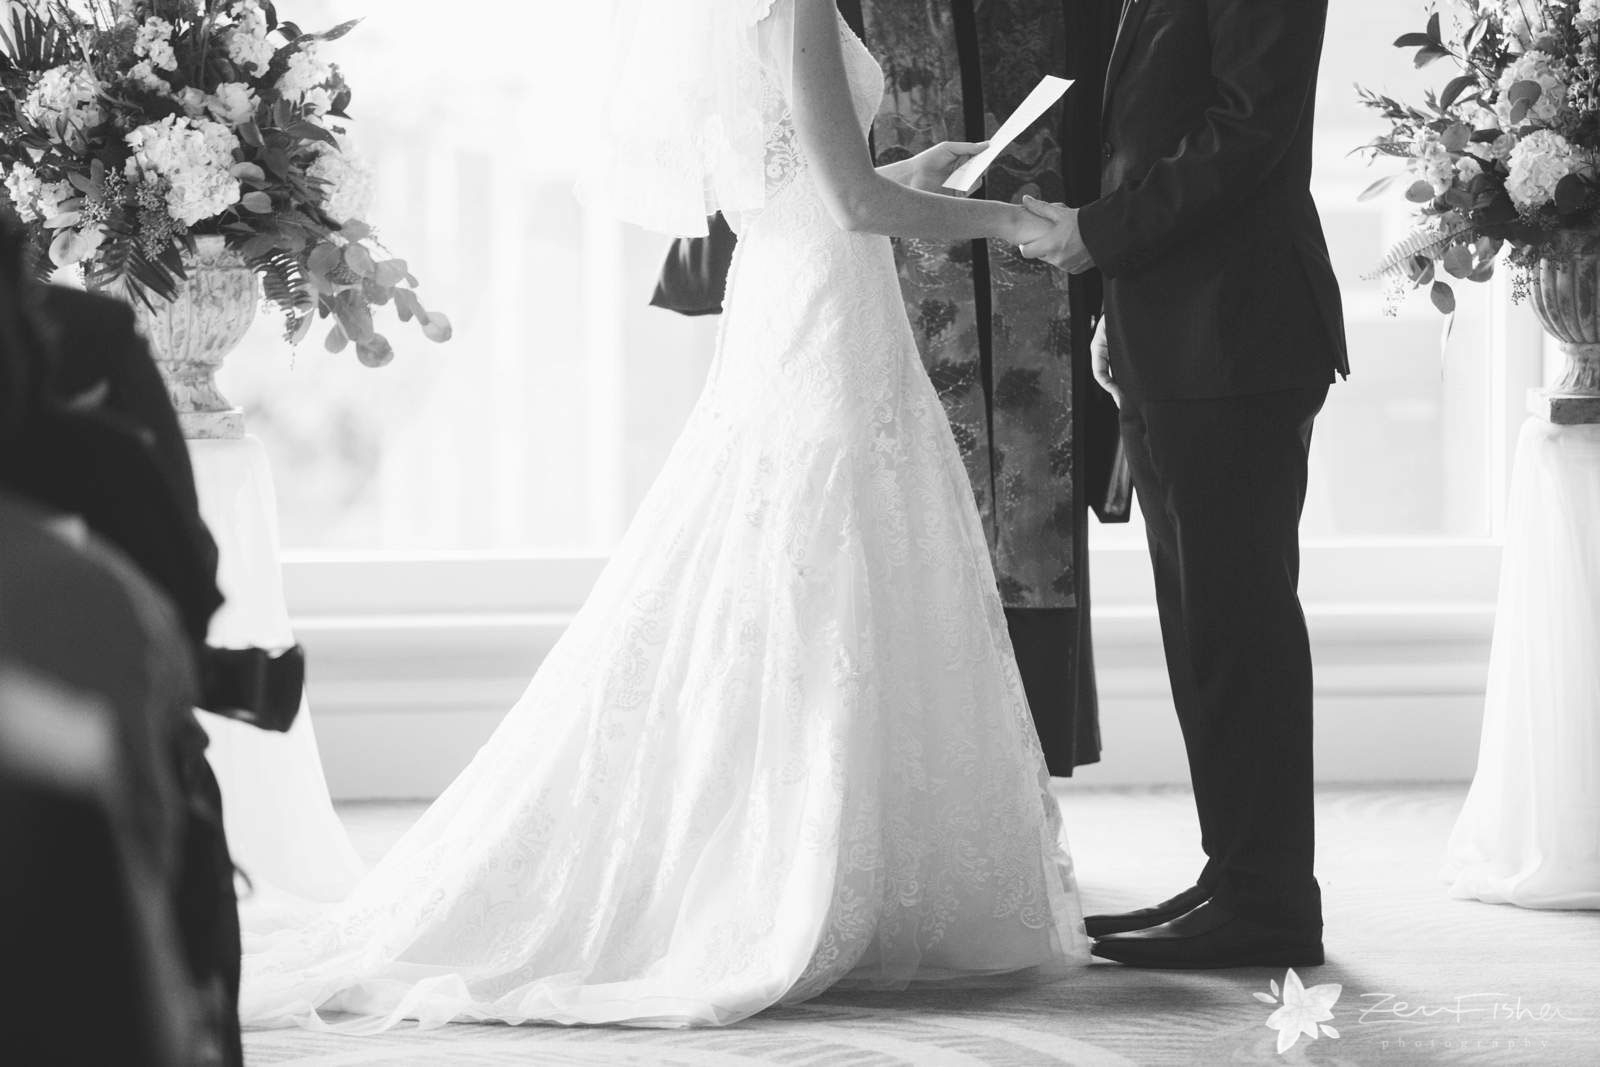 Bride and groom holding hands during ceremony, black and white, beautiful natural light